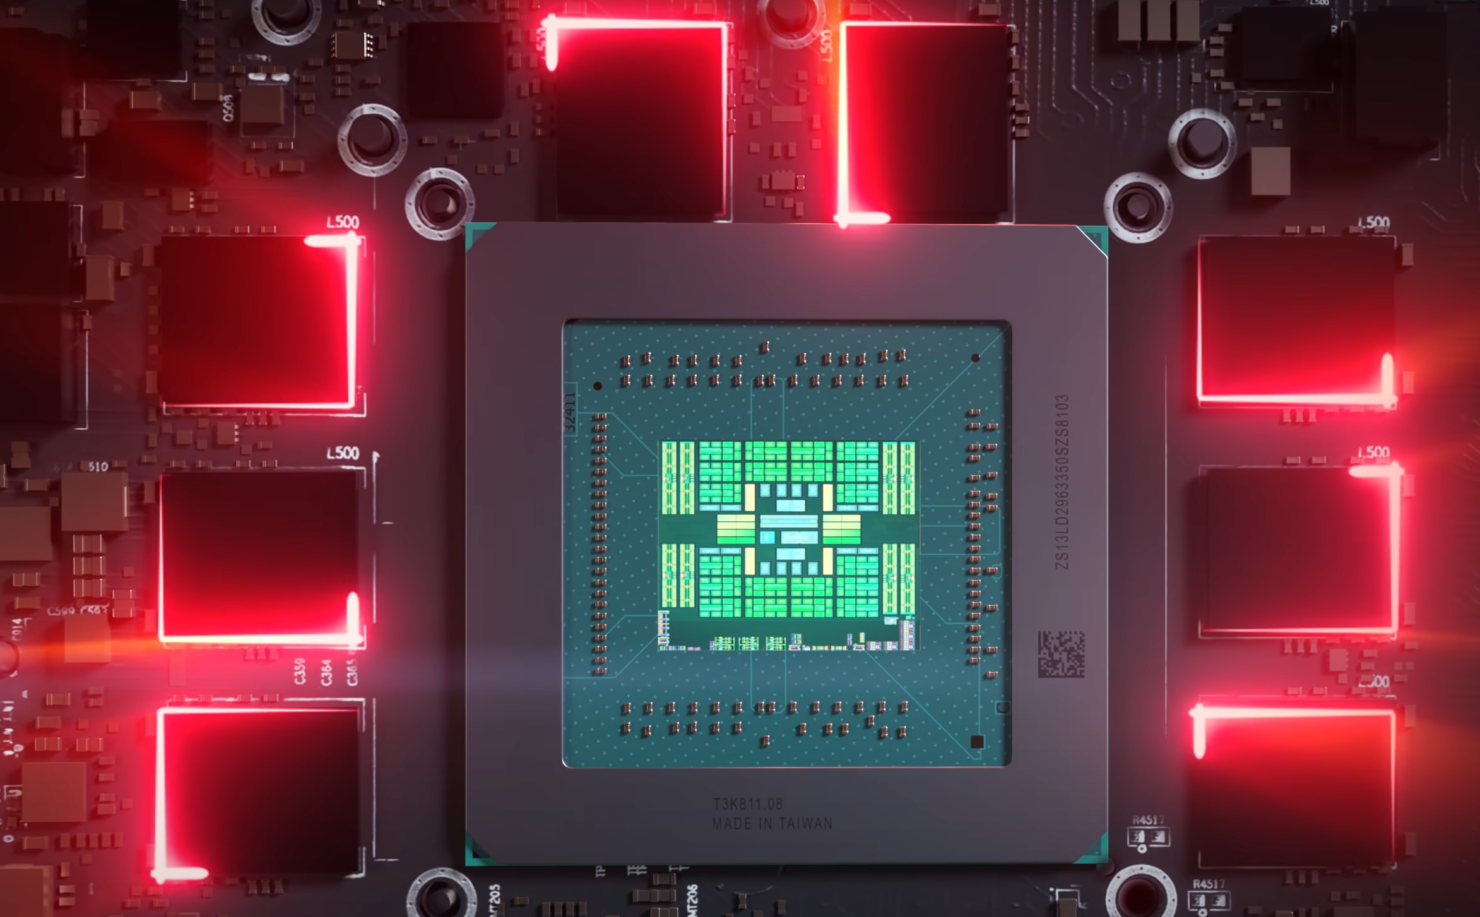 """amd-navi-22-""""navy-flounder""""-rdna-2-gpu-with-40-cus,-2560-cores-&-192-bit-memory-bus-spotted,-could-be-featured-under-radeon-rx-6700-/-rx-6800-series"""